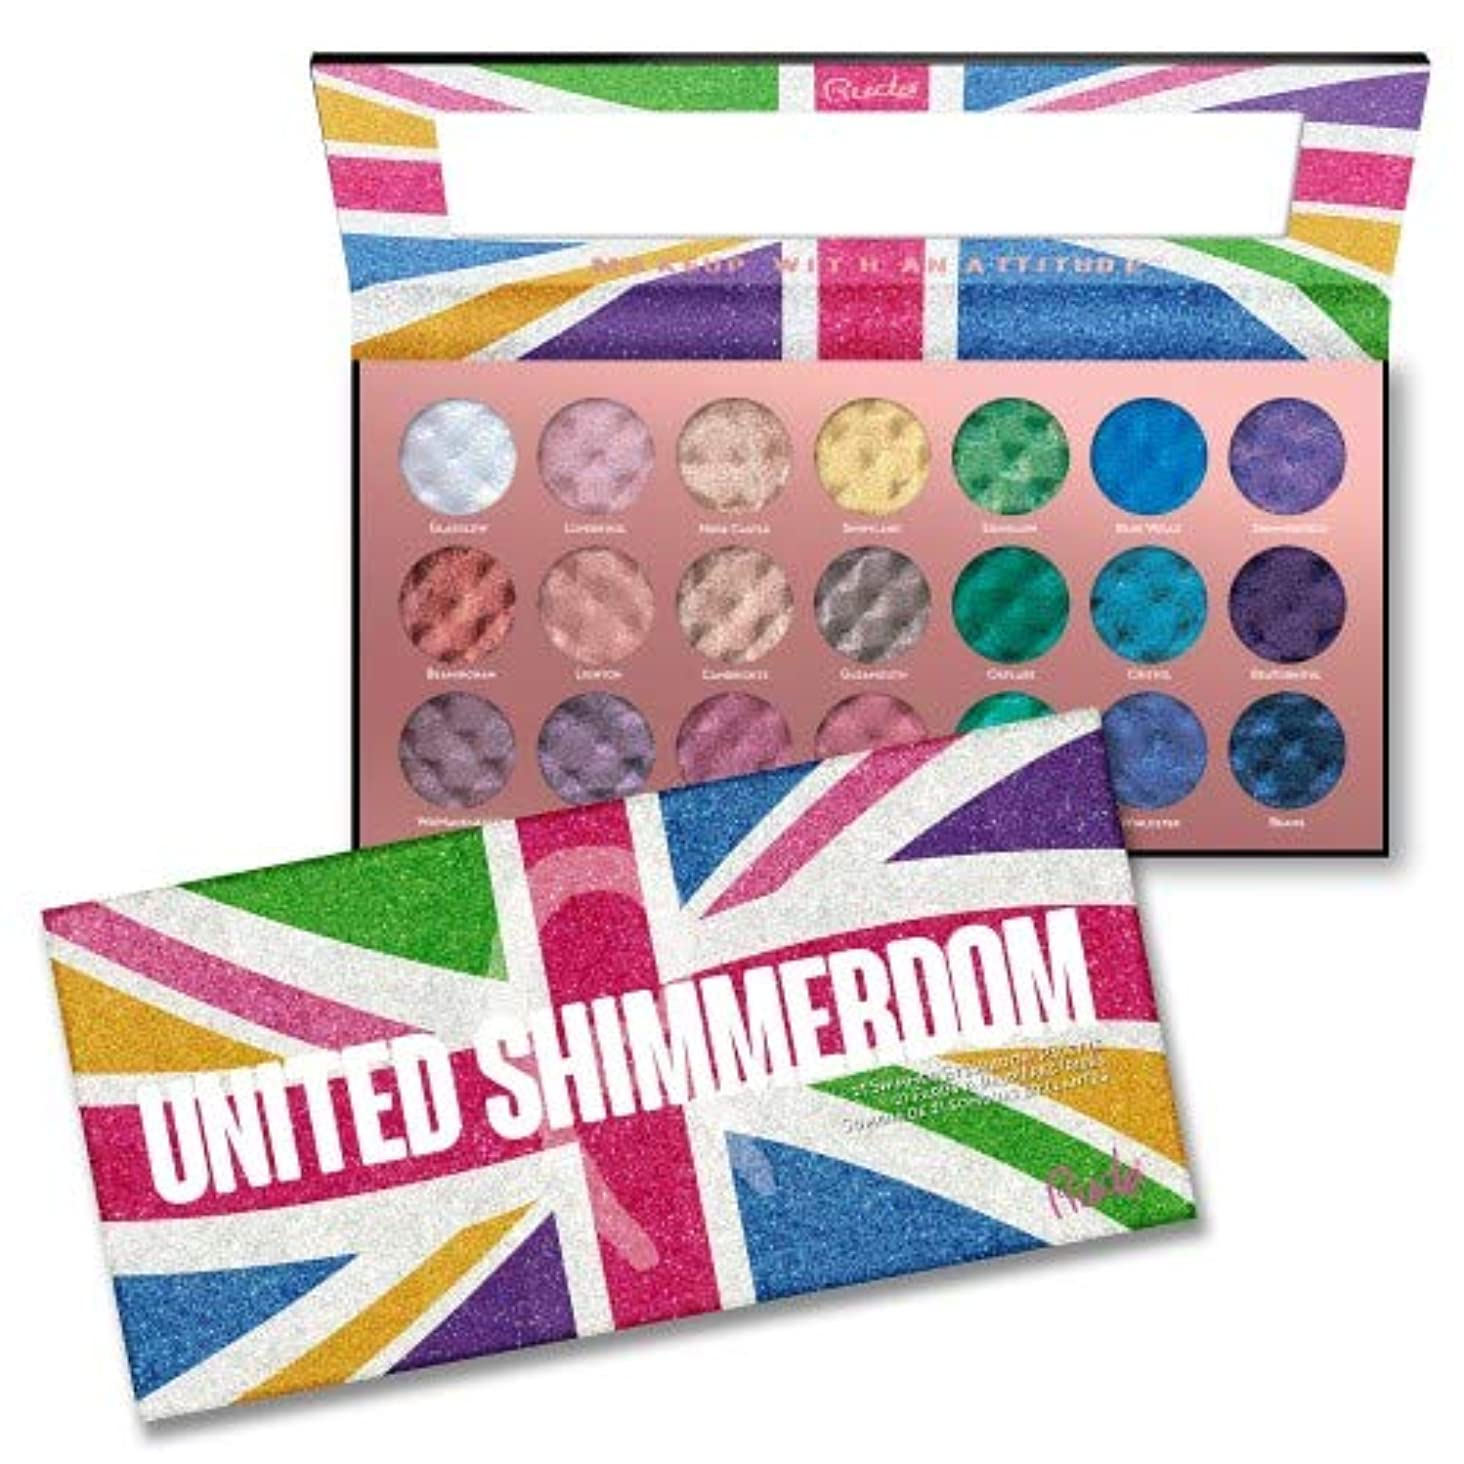 コンテンポラリー補う補う(3 Pack) RUDE United Shimmerdom - 21 Shimmer Eyeshadow Palette (並行輸入品)